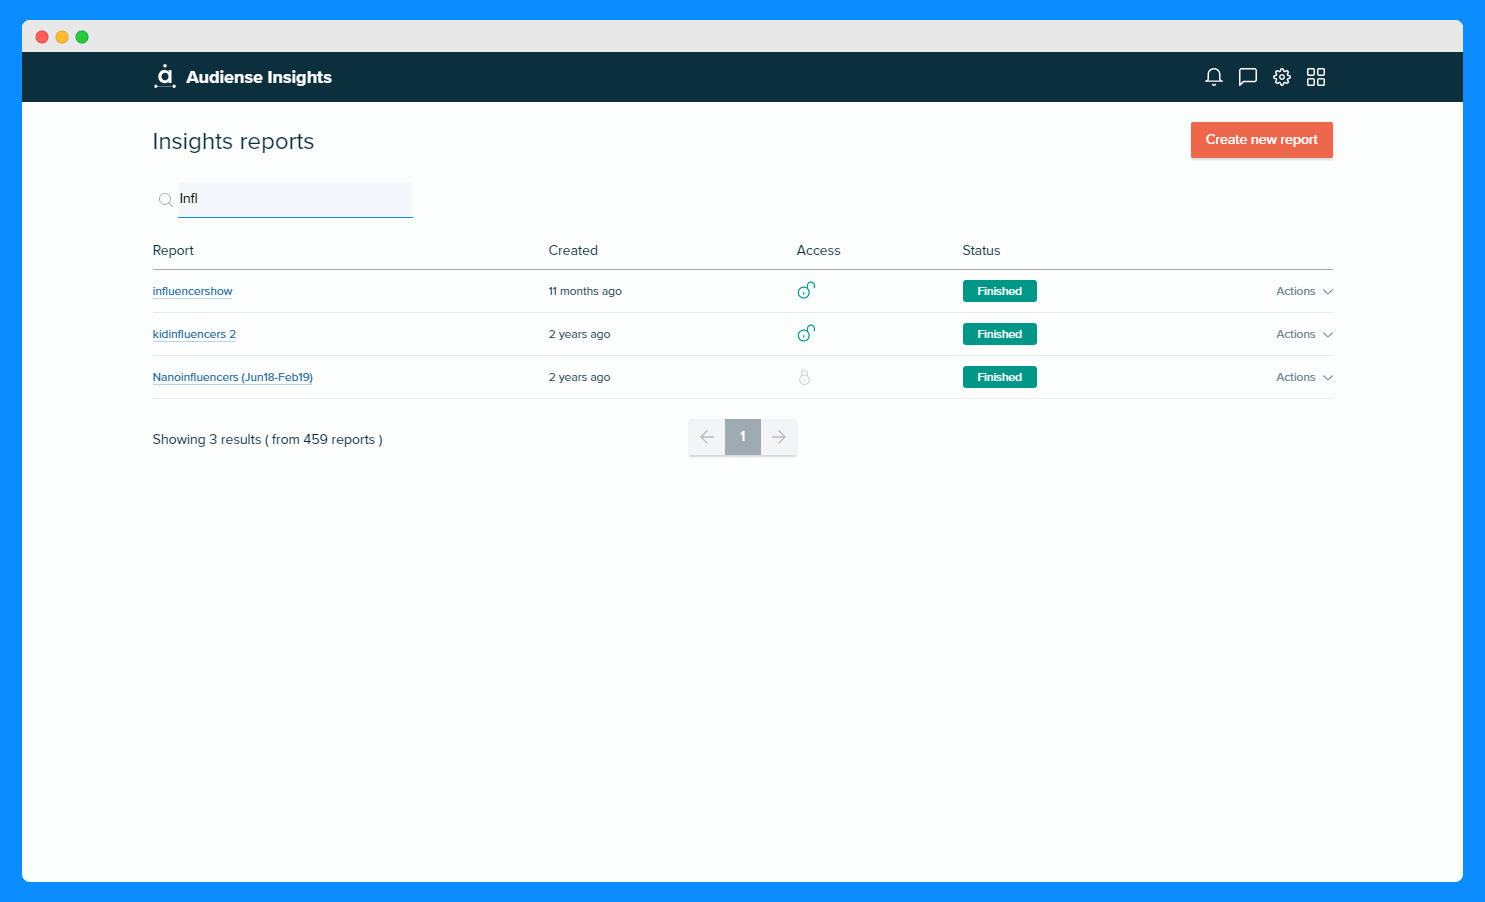 Audiense Insights - New Feature - Search for a report by its title